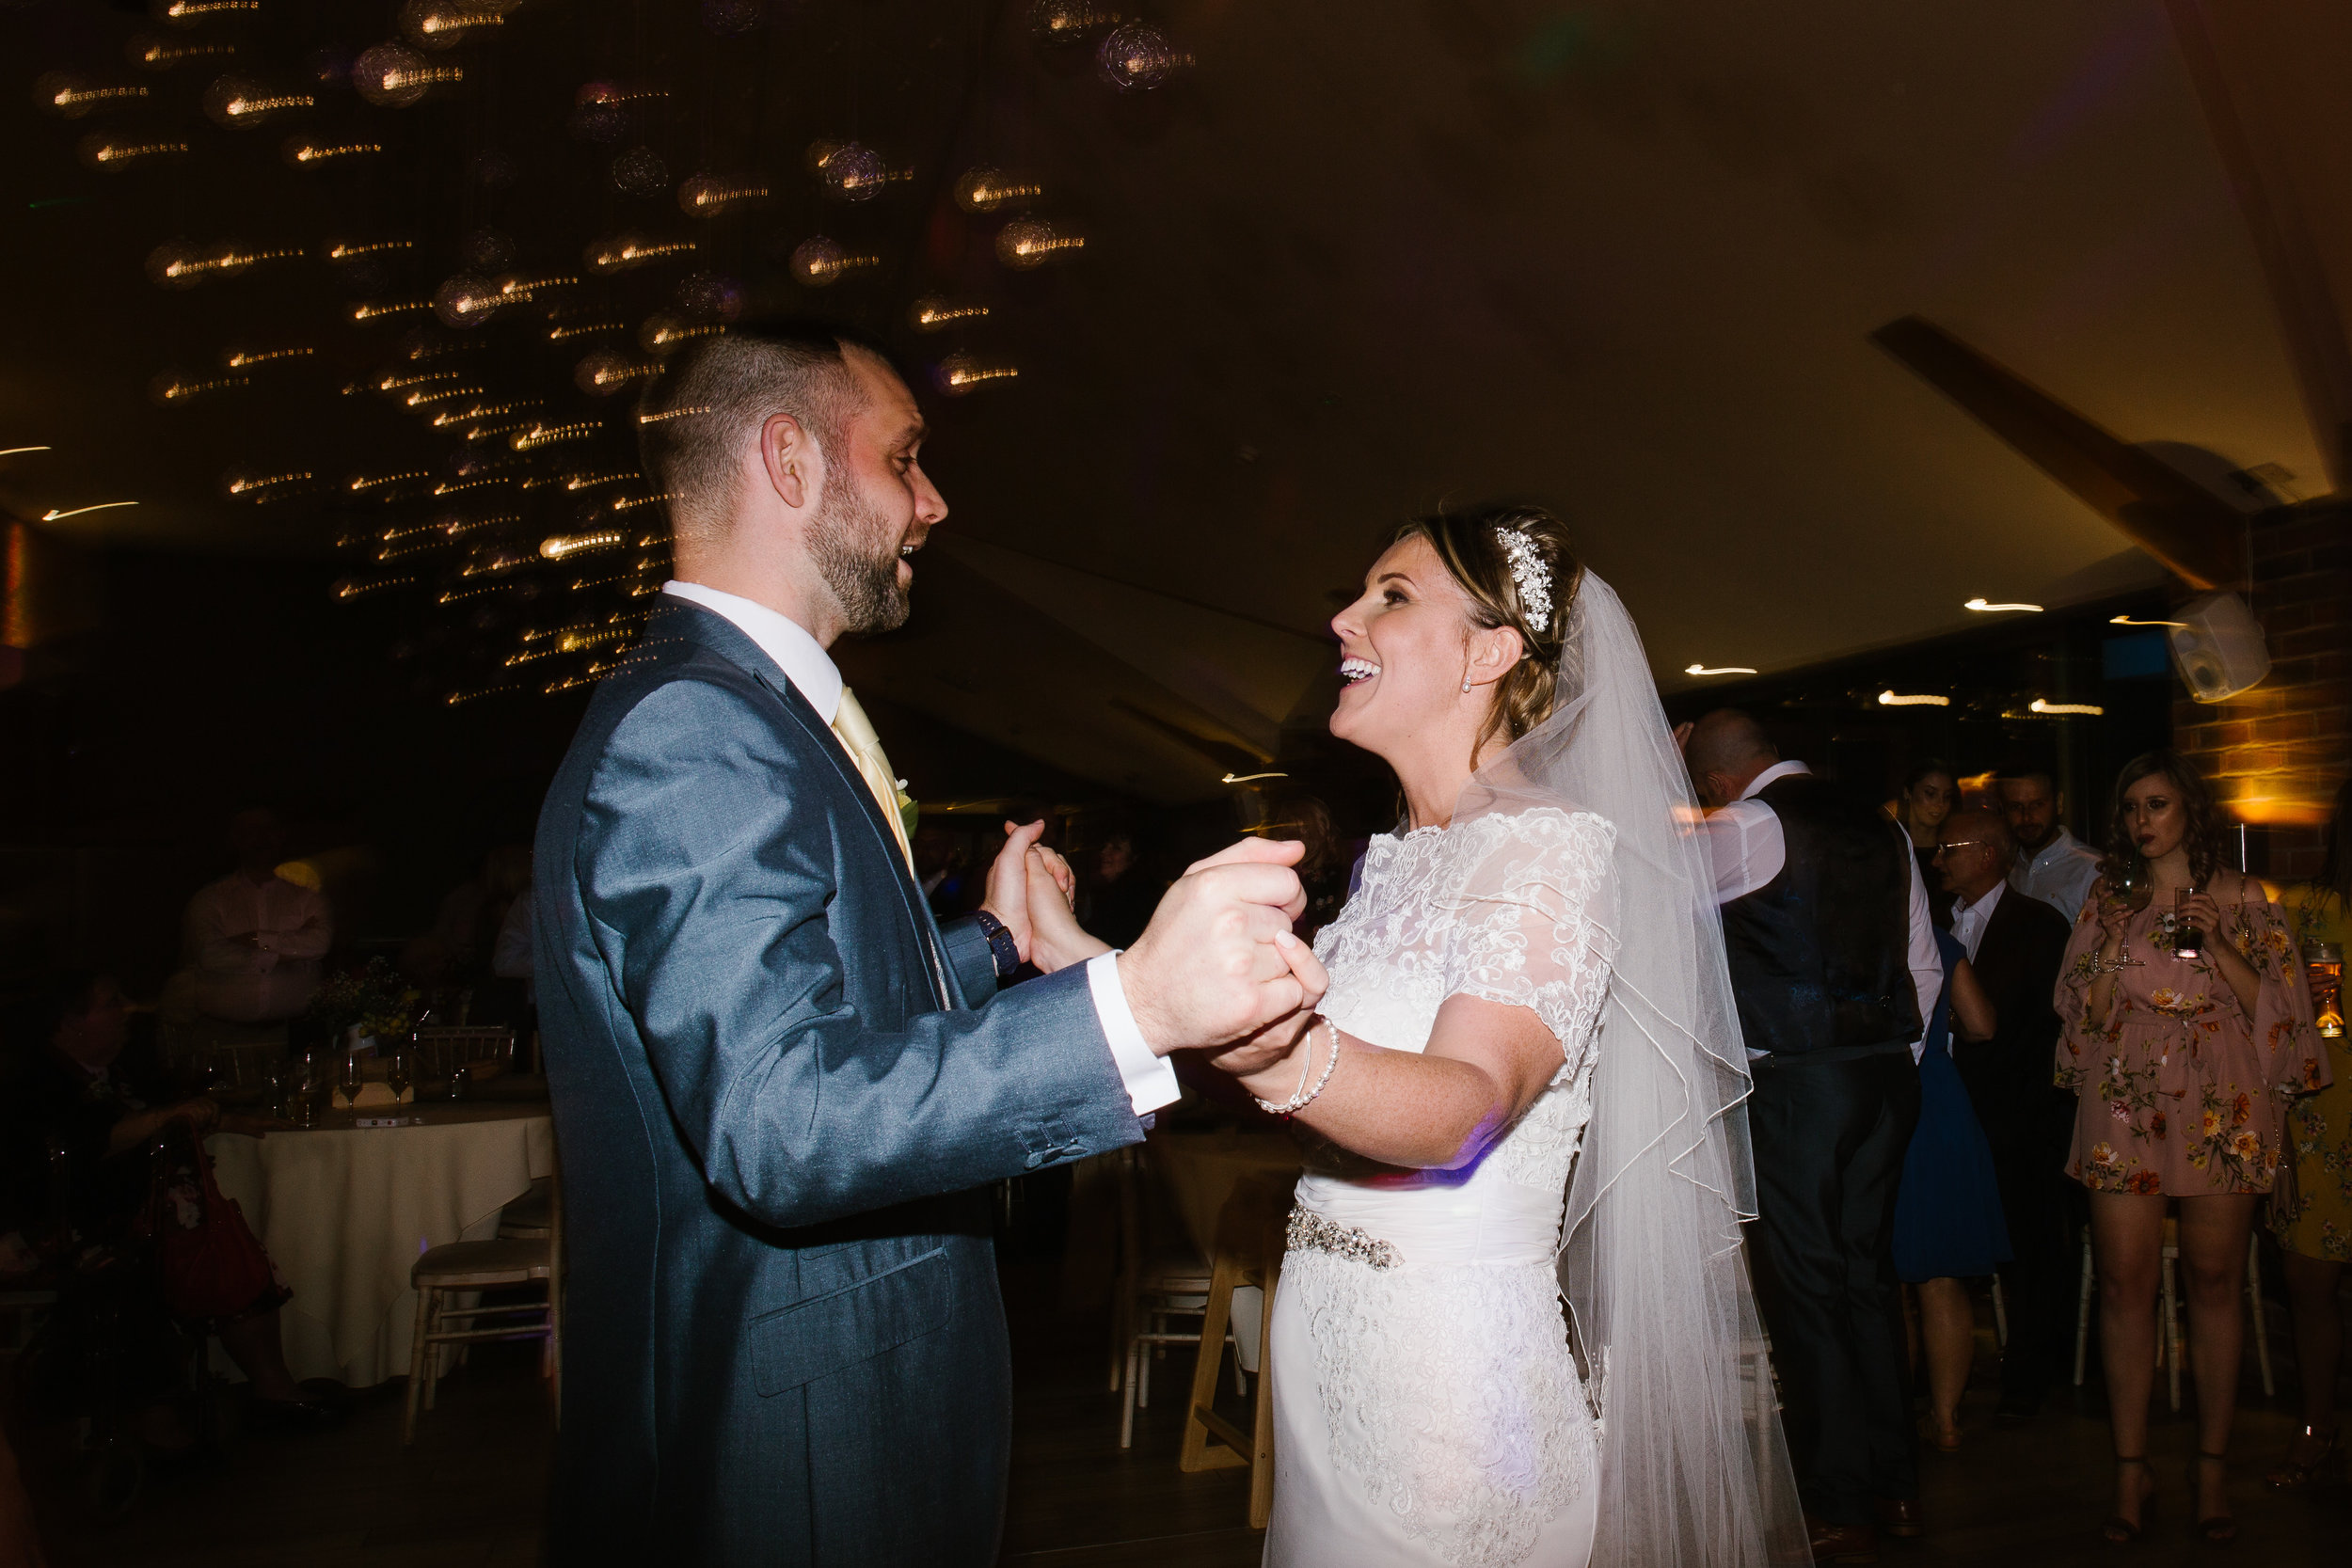 bride and groom laughing and dancing together at their spring wedding in staffordshire